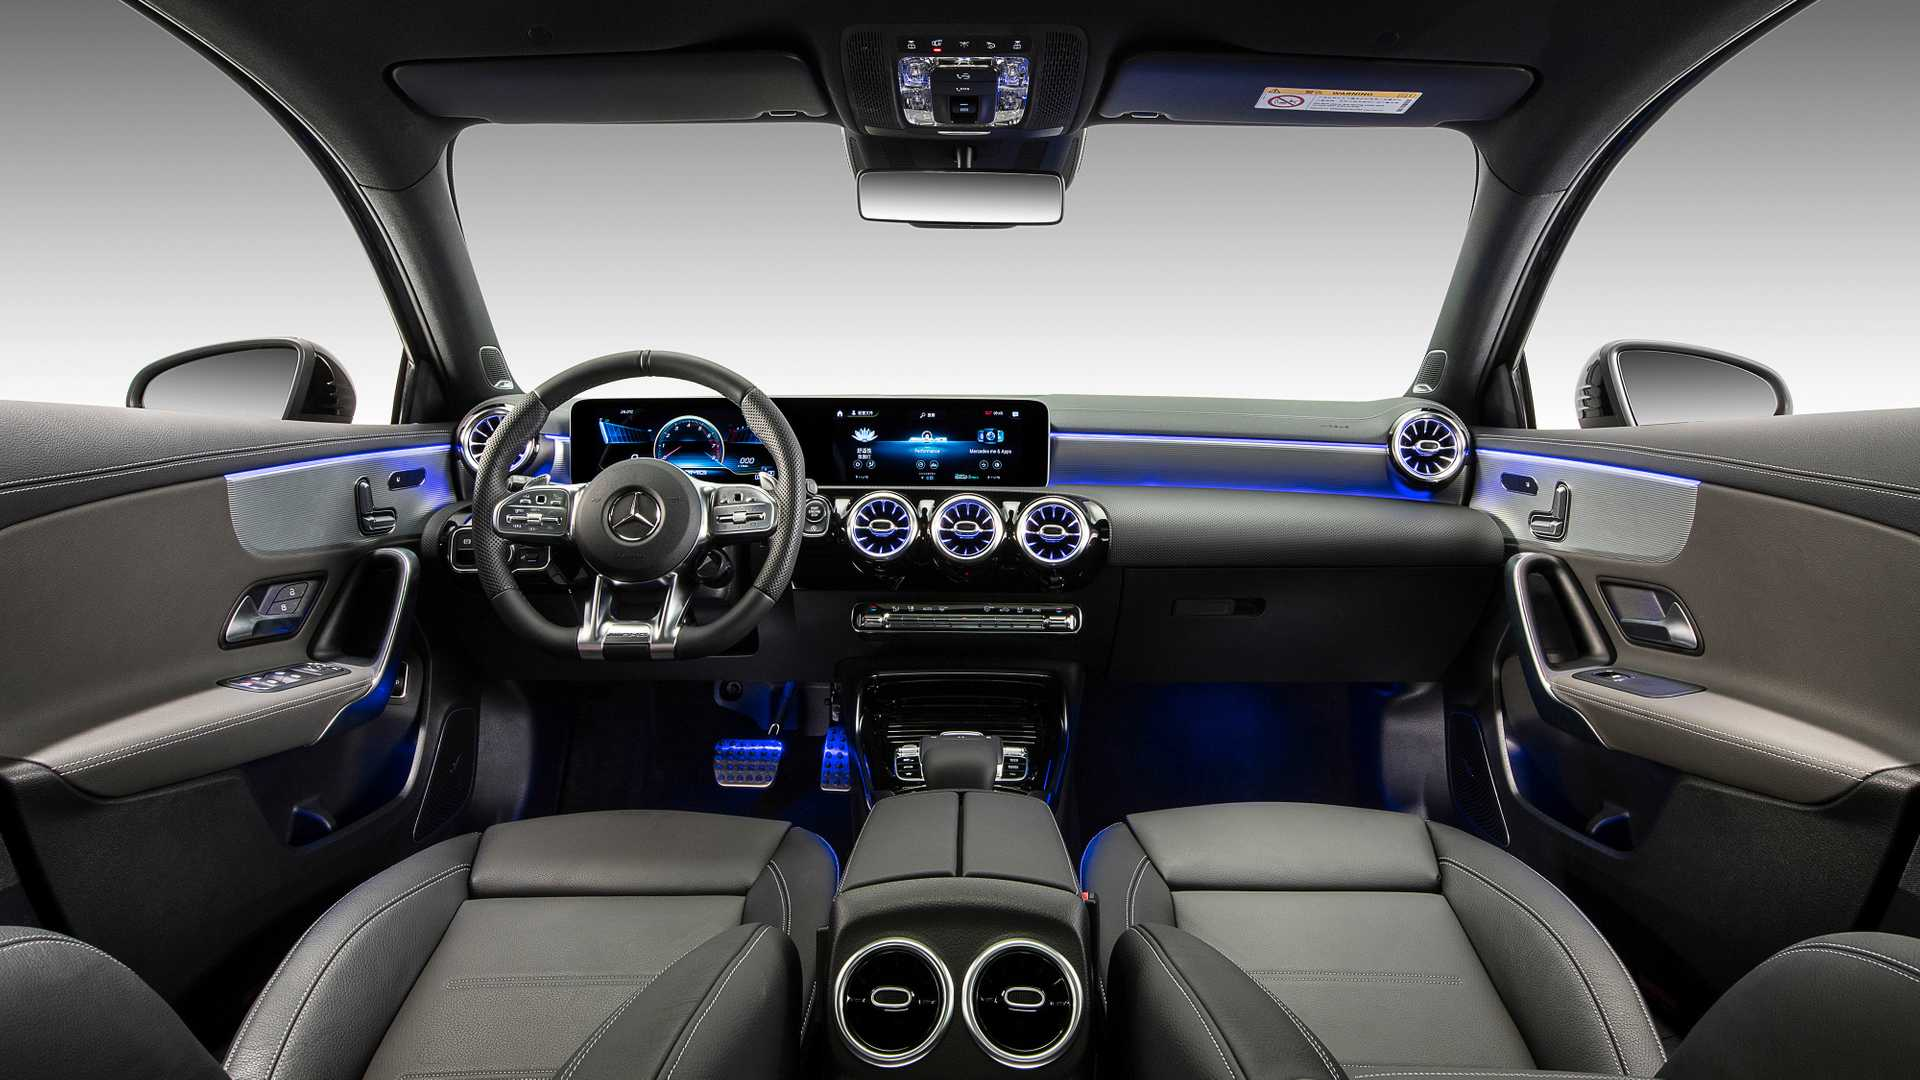 2020 Mercedes-AMG A35 L Sedan 4MATIC Interior Cockpit Wallpaper (12)